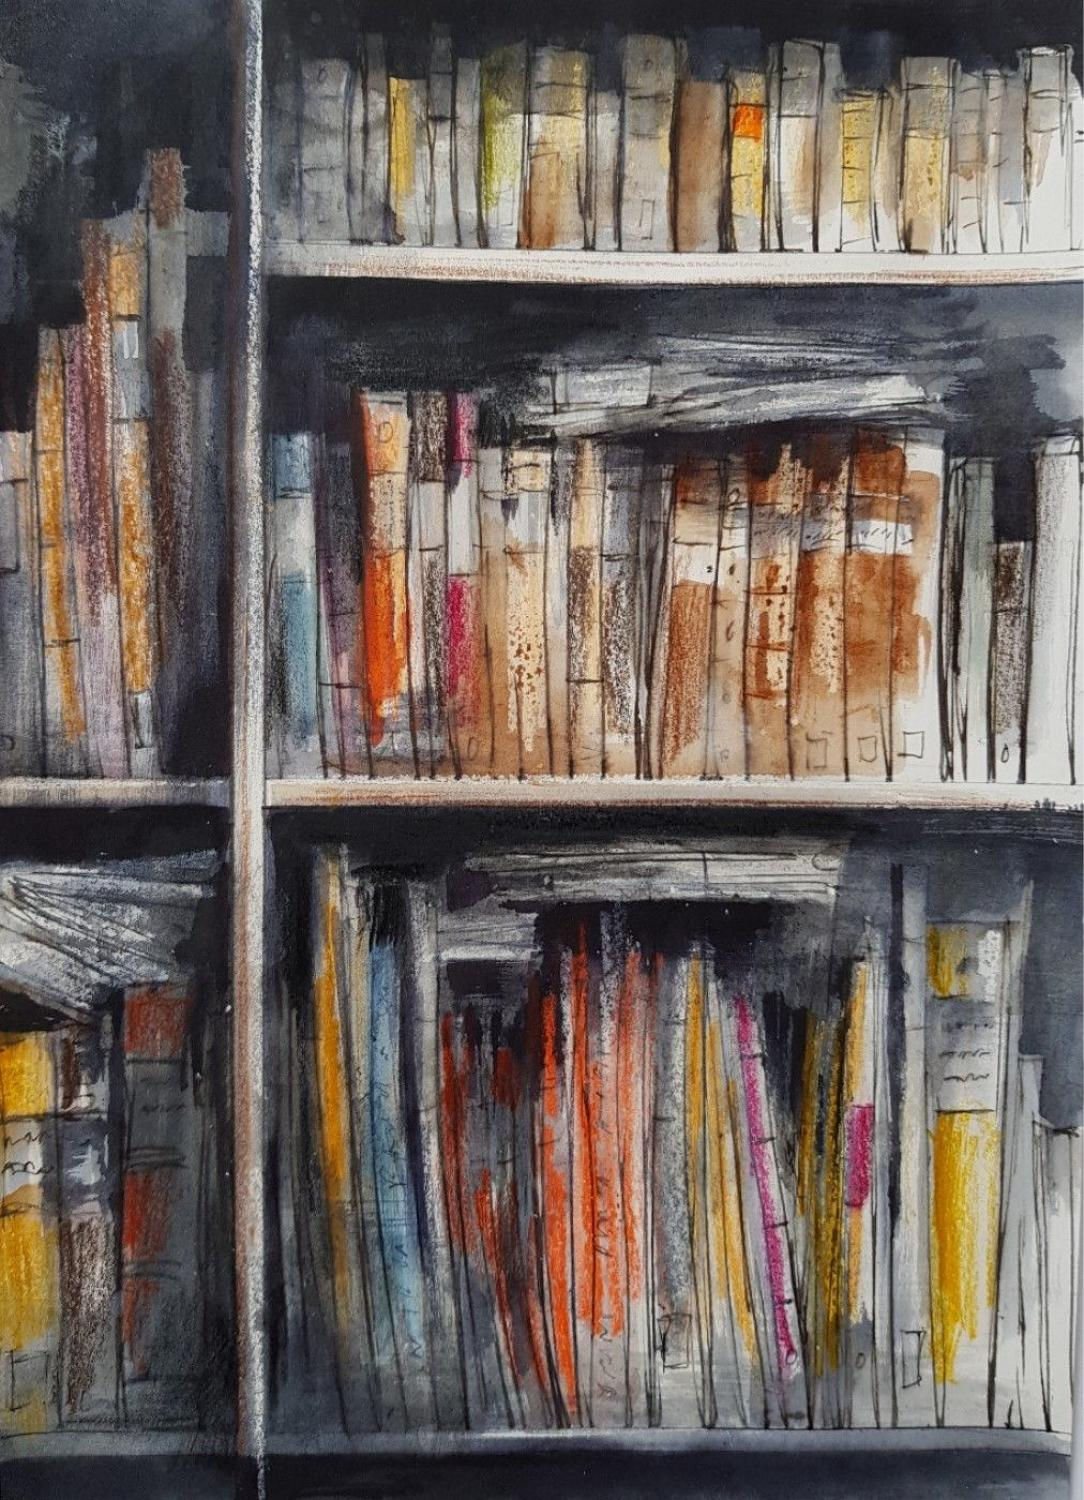 Trevor Newton. Sunlight on books 2